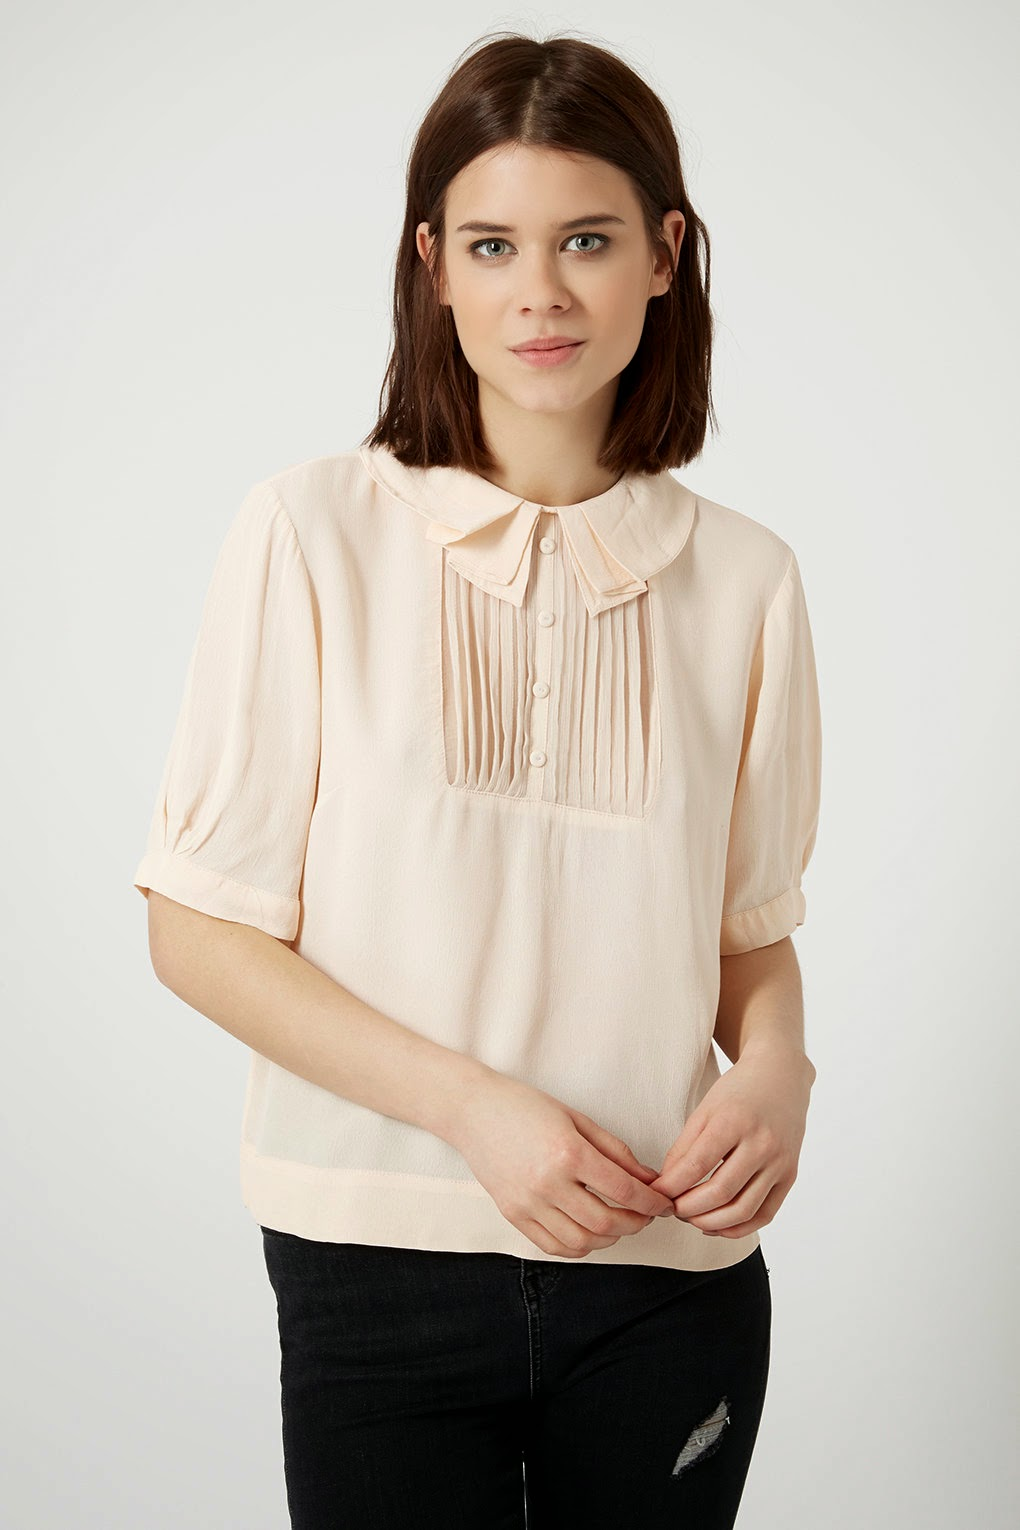 peach bib blouse, topshop peach blouse,